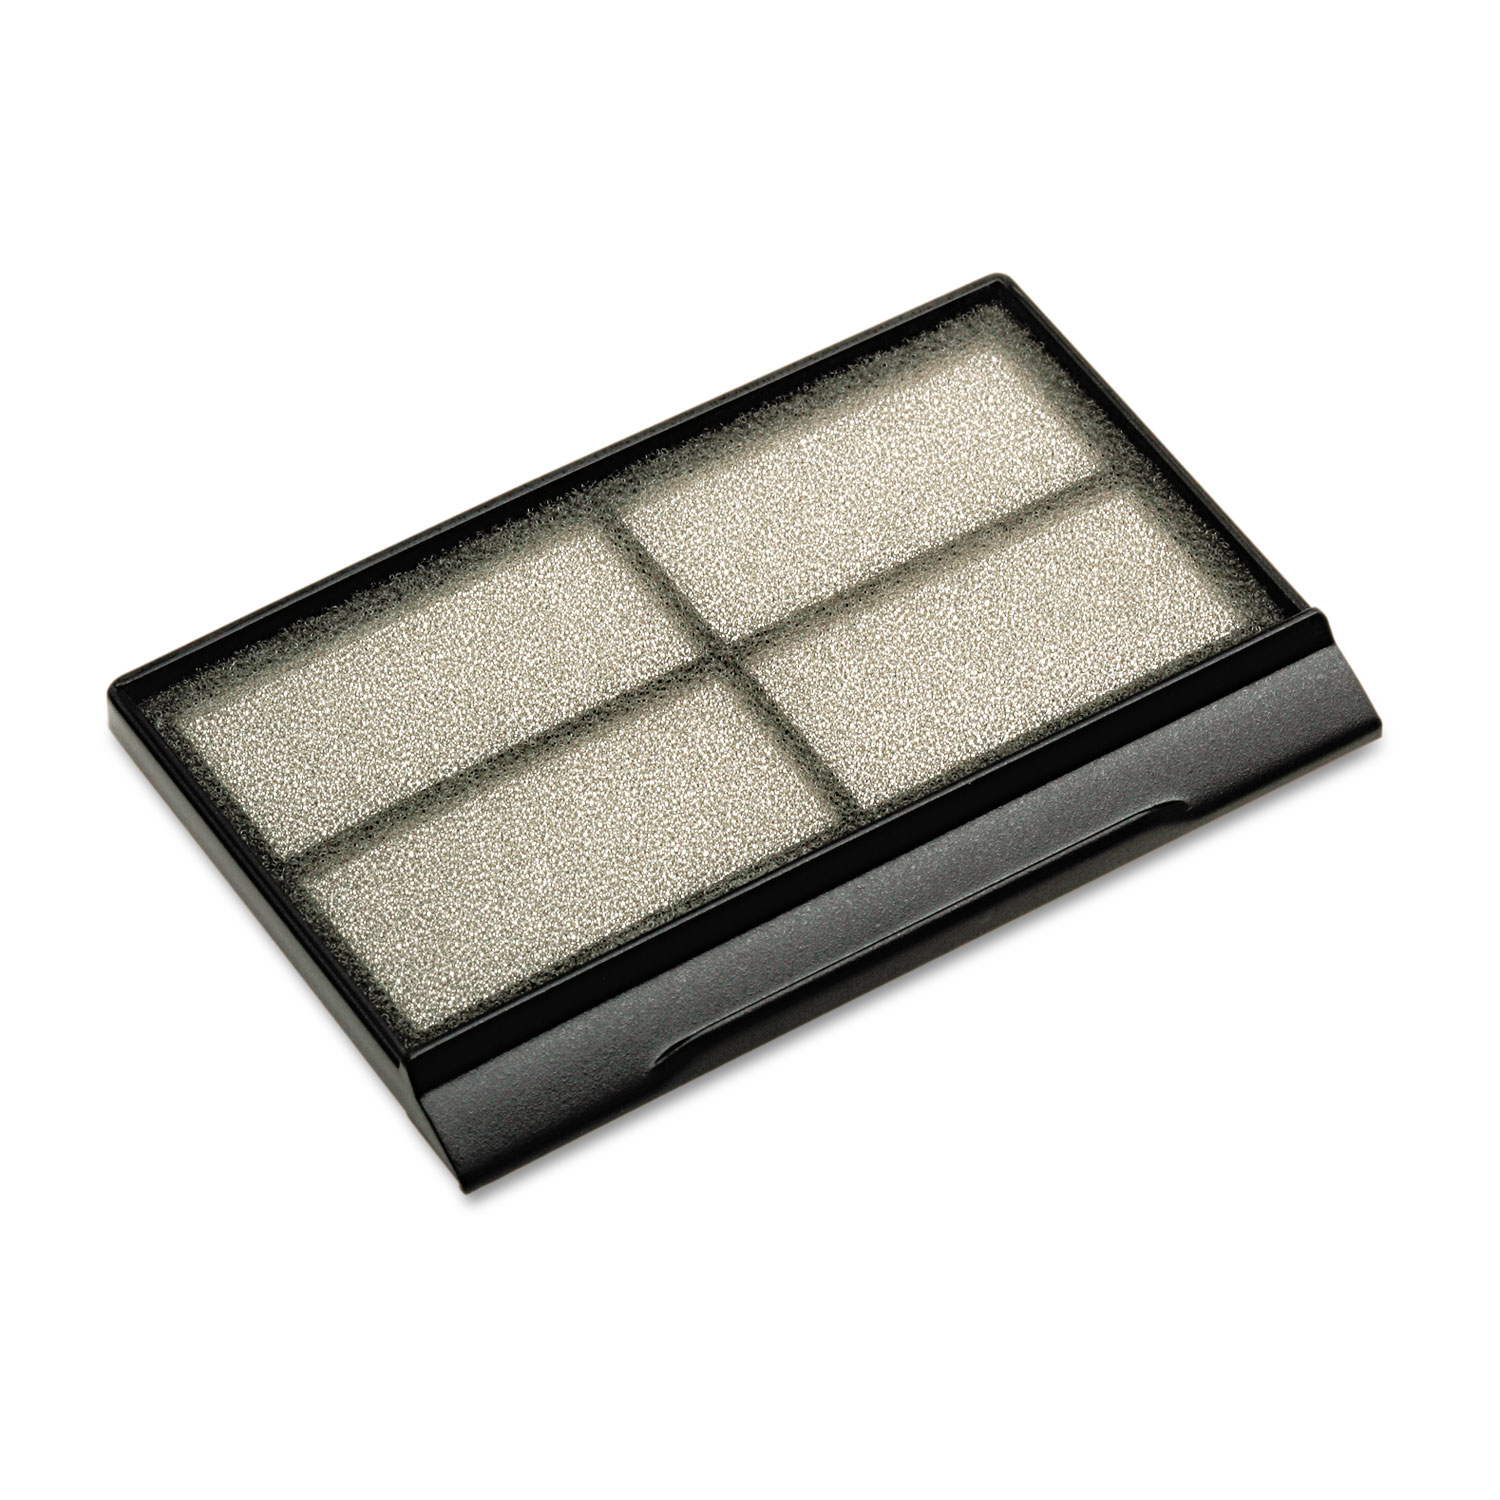 Replacement Air Filter for PowerLite 92/93/93+/95/96W/905/915W/1835 EPSV13H134A29